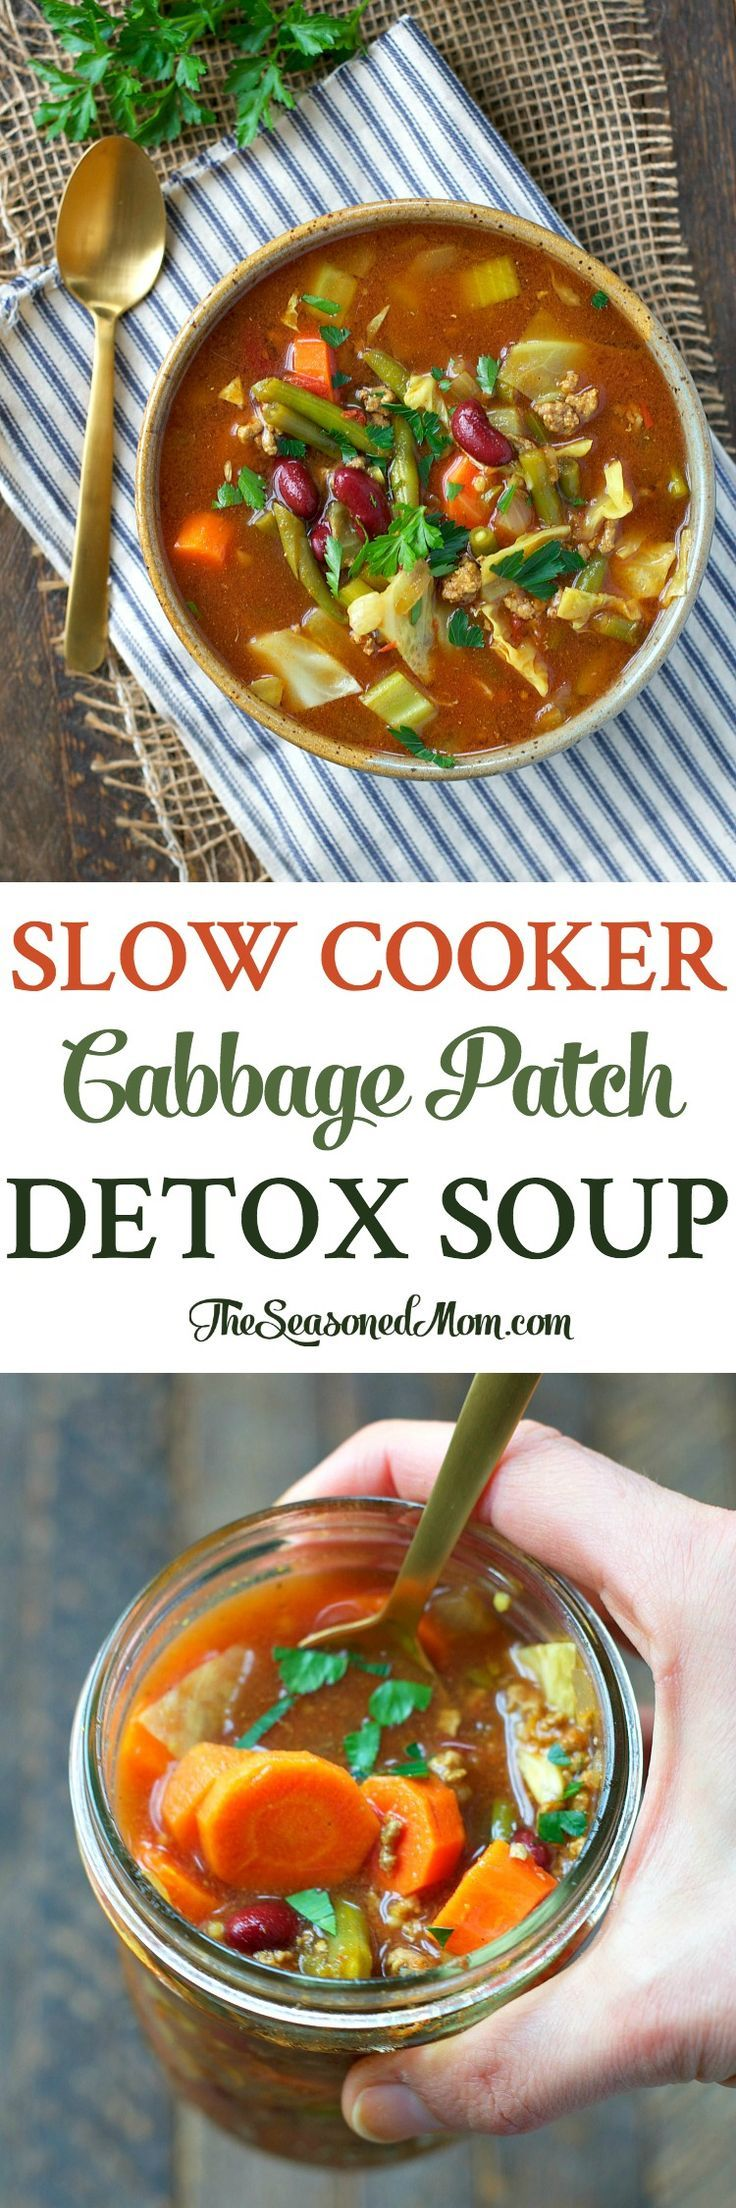 """Get your diet back on track with this Slow Cooker """"Cabbage Patch"""" Detox Soup! You only need 10 minutes to toss the ingredients into a Crock Pot; you'll come home to a healthy dinner or easy lunch that's high in protein, full of filling fiber, and loaded w"""